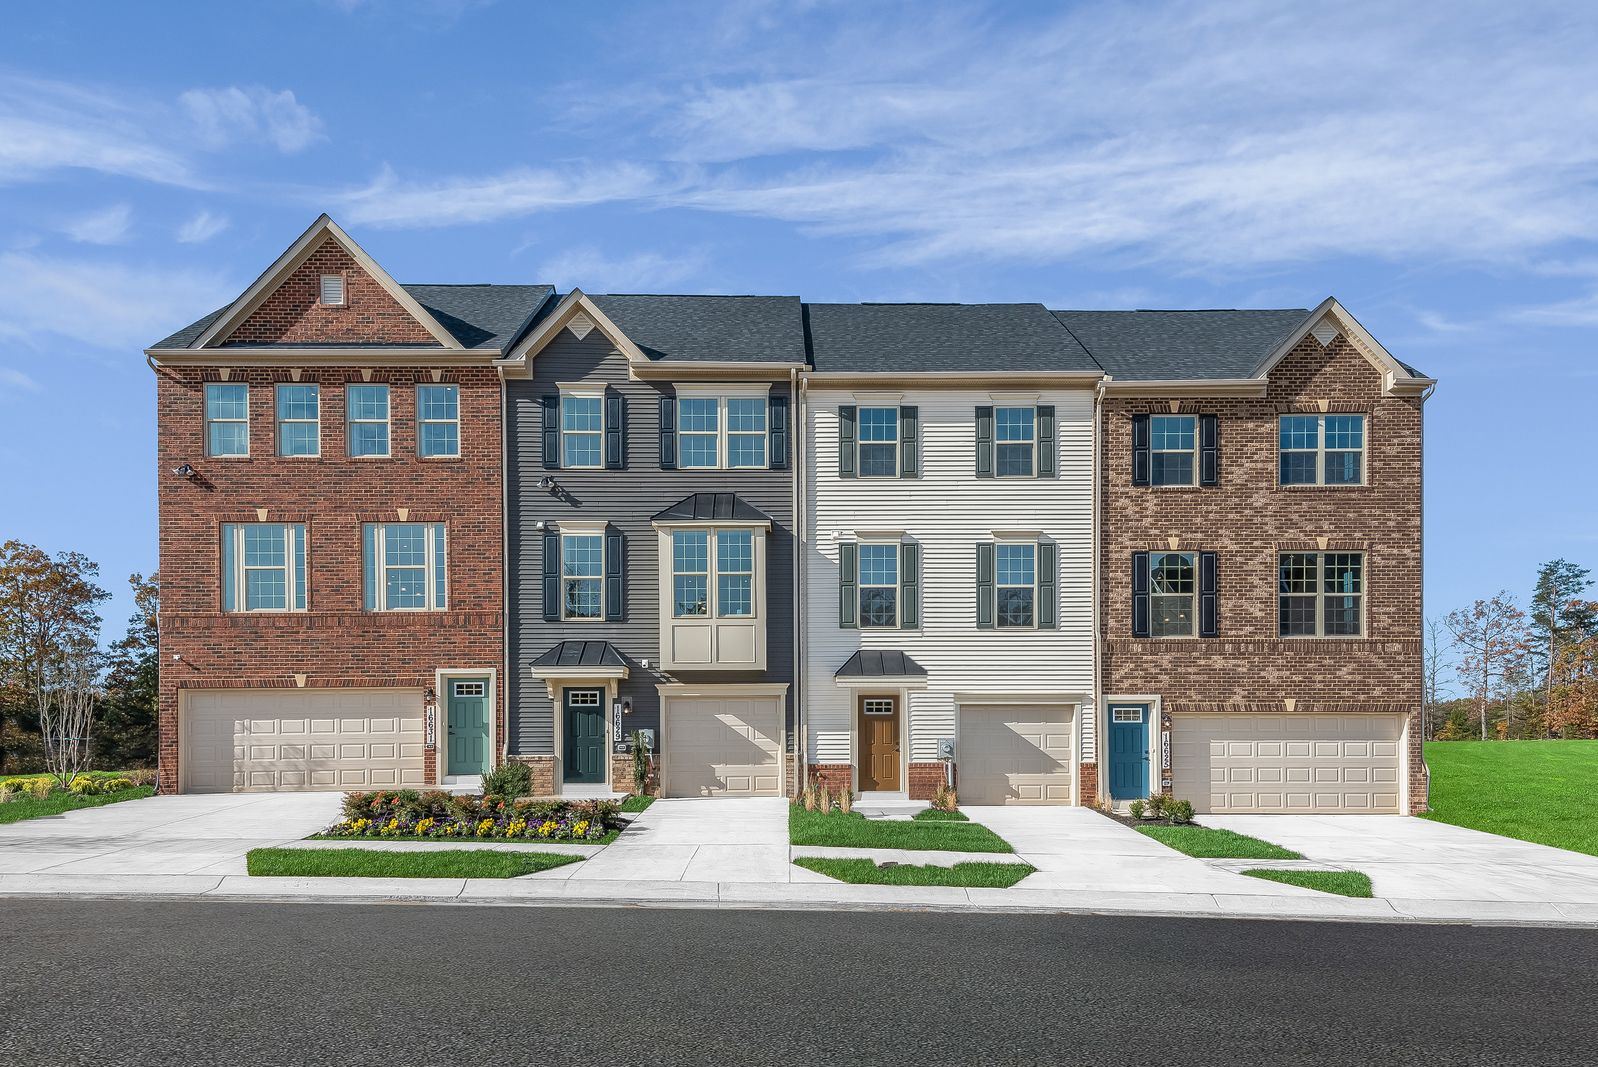 WELCOME TO SIGNATURE CLUB IN ACCOKEEK, MD:Our next release of homesites are coming soon! 1 & 2 Car Garage Townhomes in a convenient location from theupper $300s - low $400s.Schedule your appointment today!